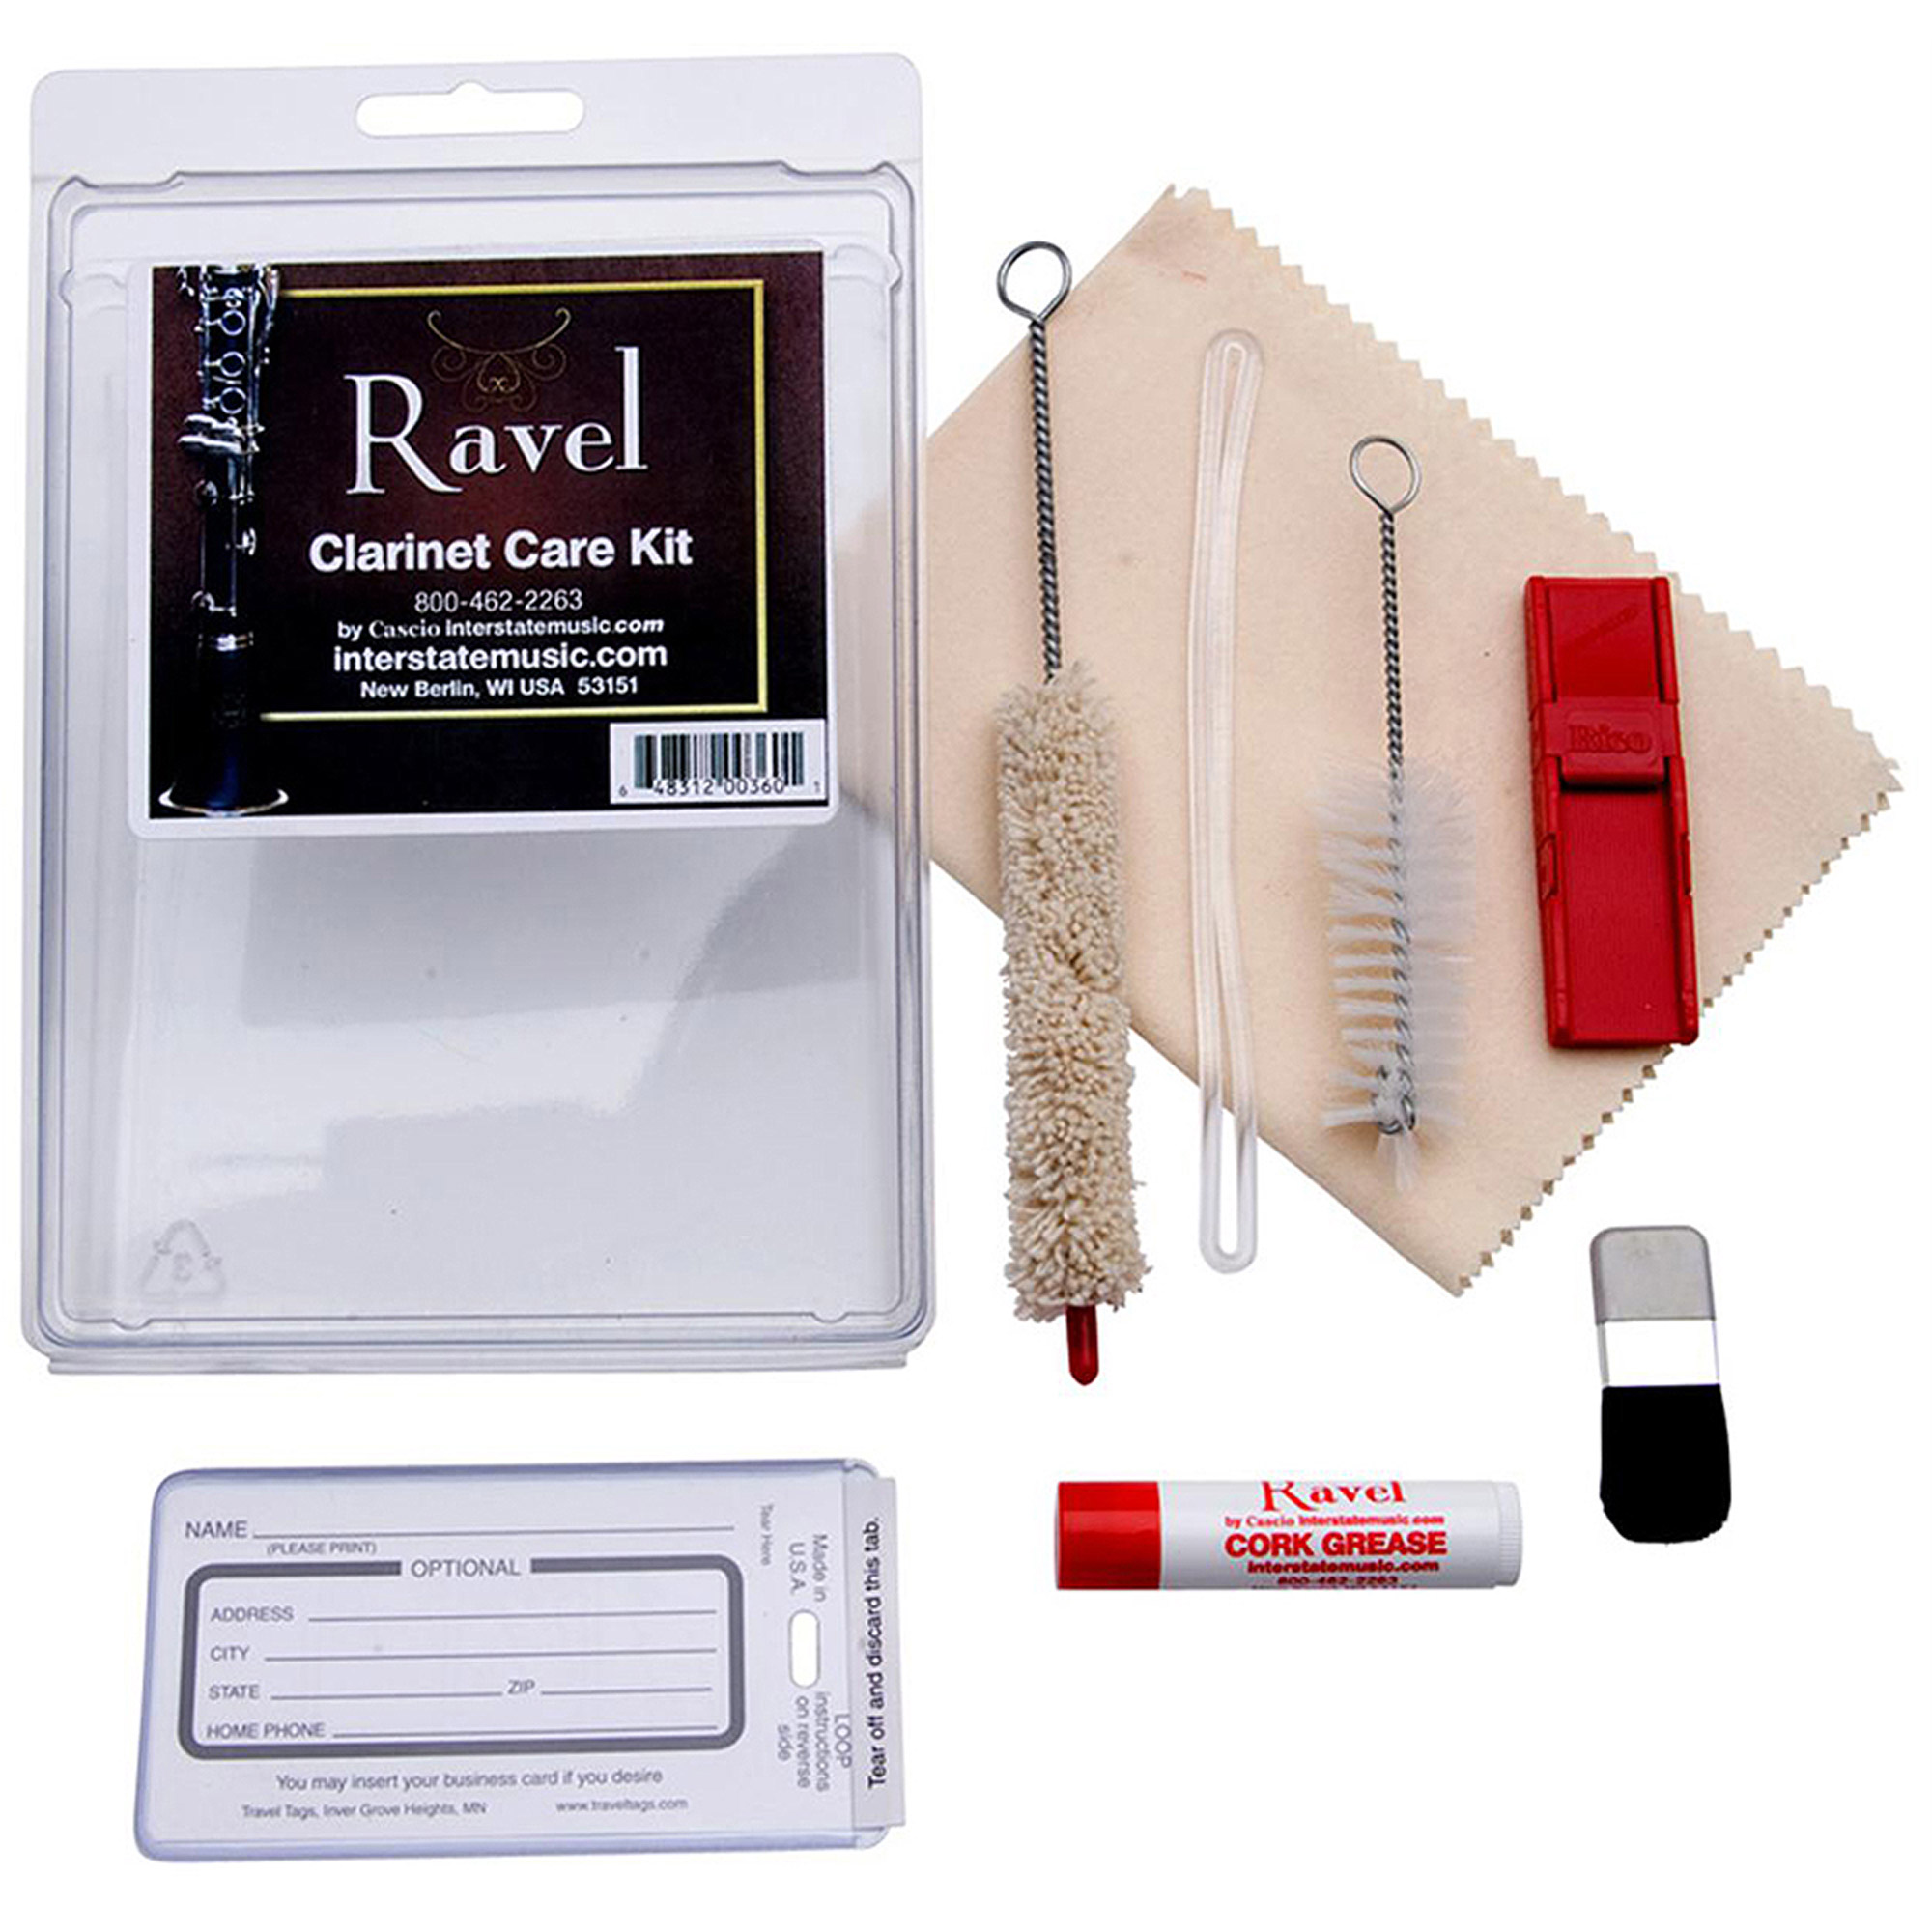 Ravel OP340, Clarinet Care Kit